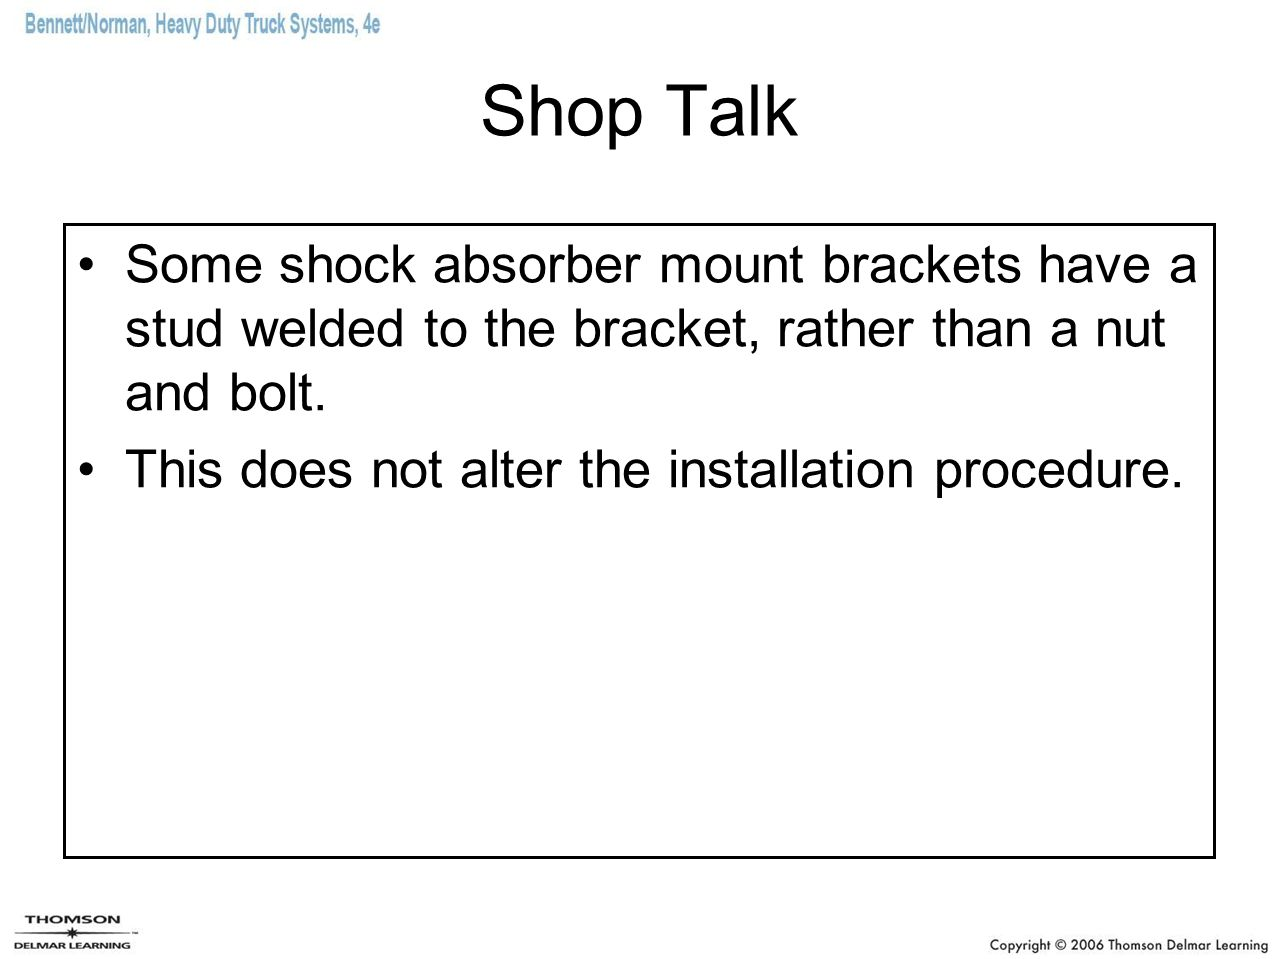 Shop Talk Some shock absorber mount brackets have a stud welded to the bracket, rather than a nut and bolt. This does not alter the installation proce